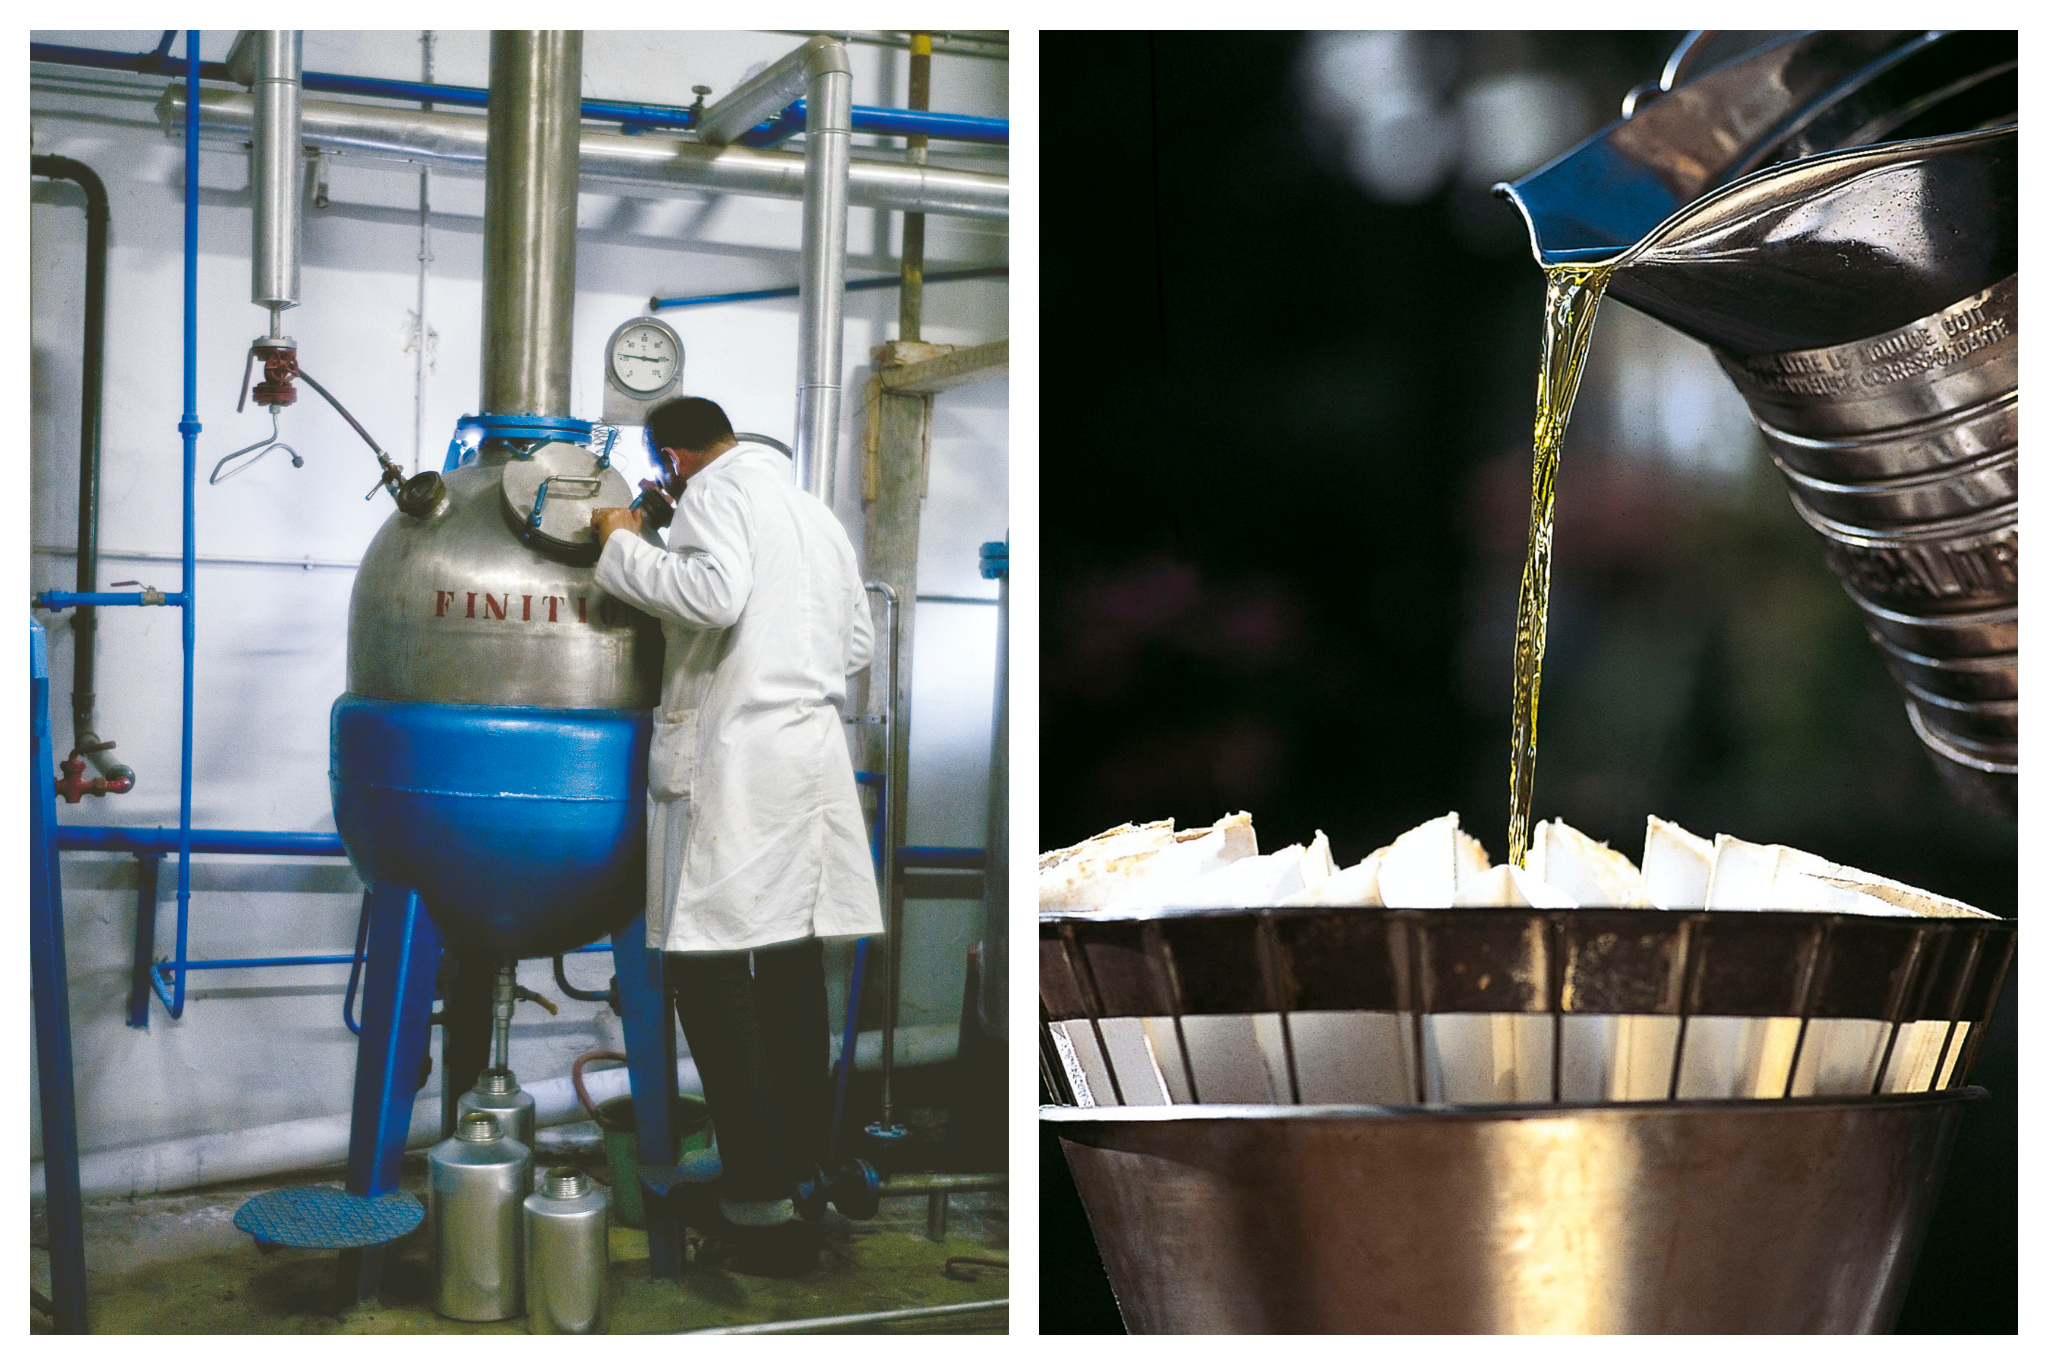 Left: A man in the Fragonard perfume factory works on a machine to extract scents from various flowers and items, Right: Perfume, Bright and golden, is poured into a strainer to be filtered